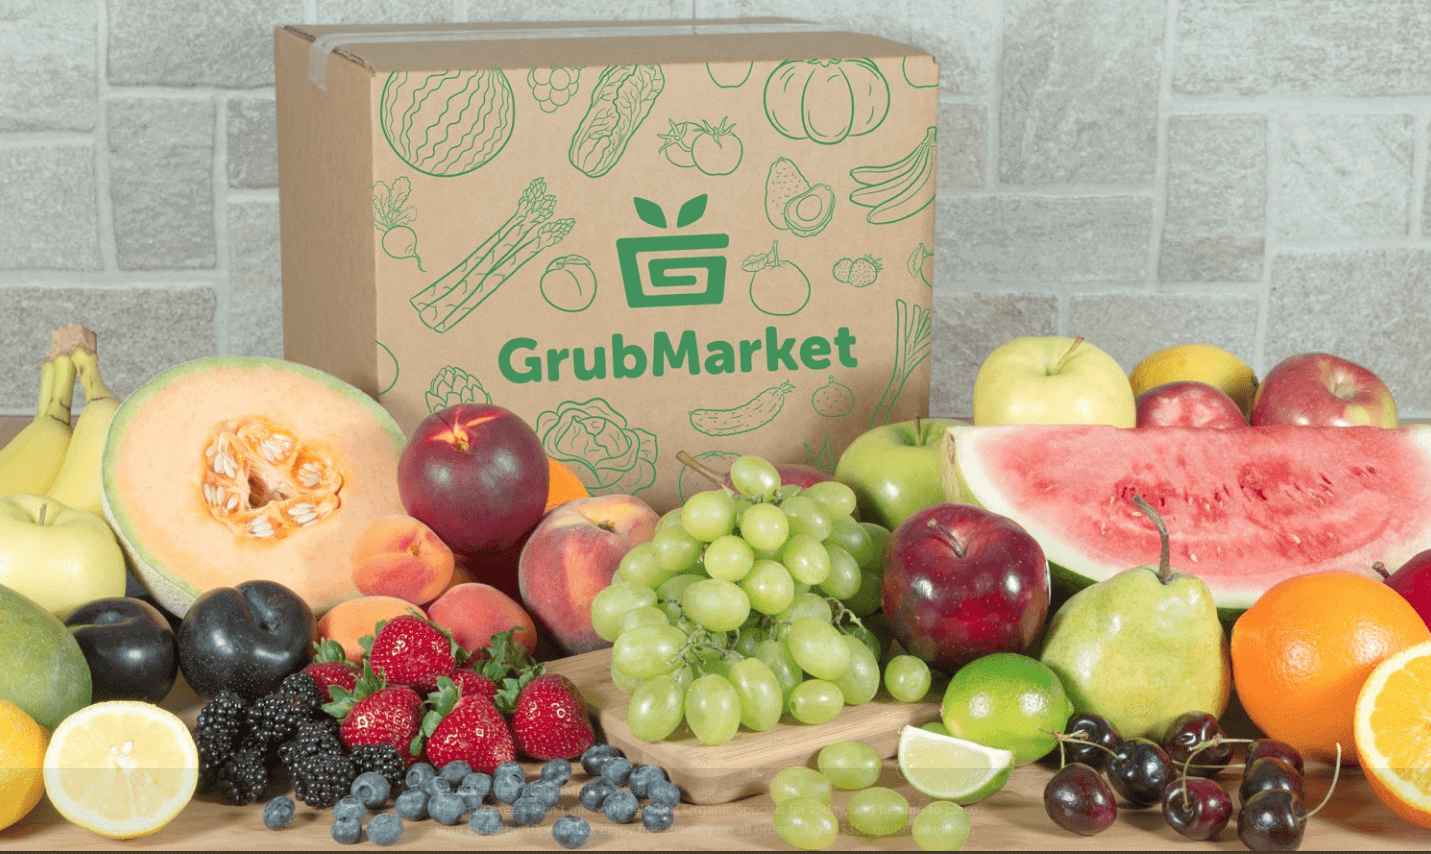 GrubMarket-App  - GrubMarket App - 3 Important Lessons to learn from GrubMarket